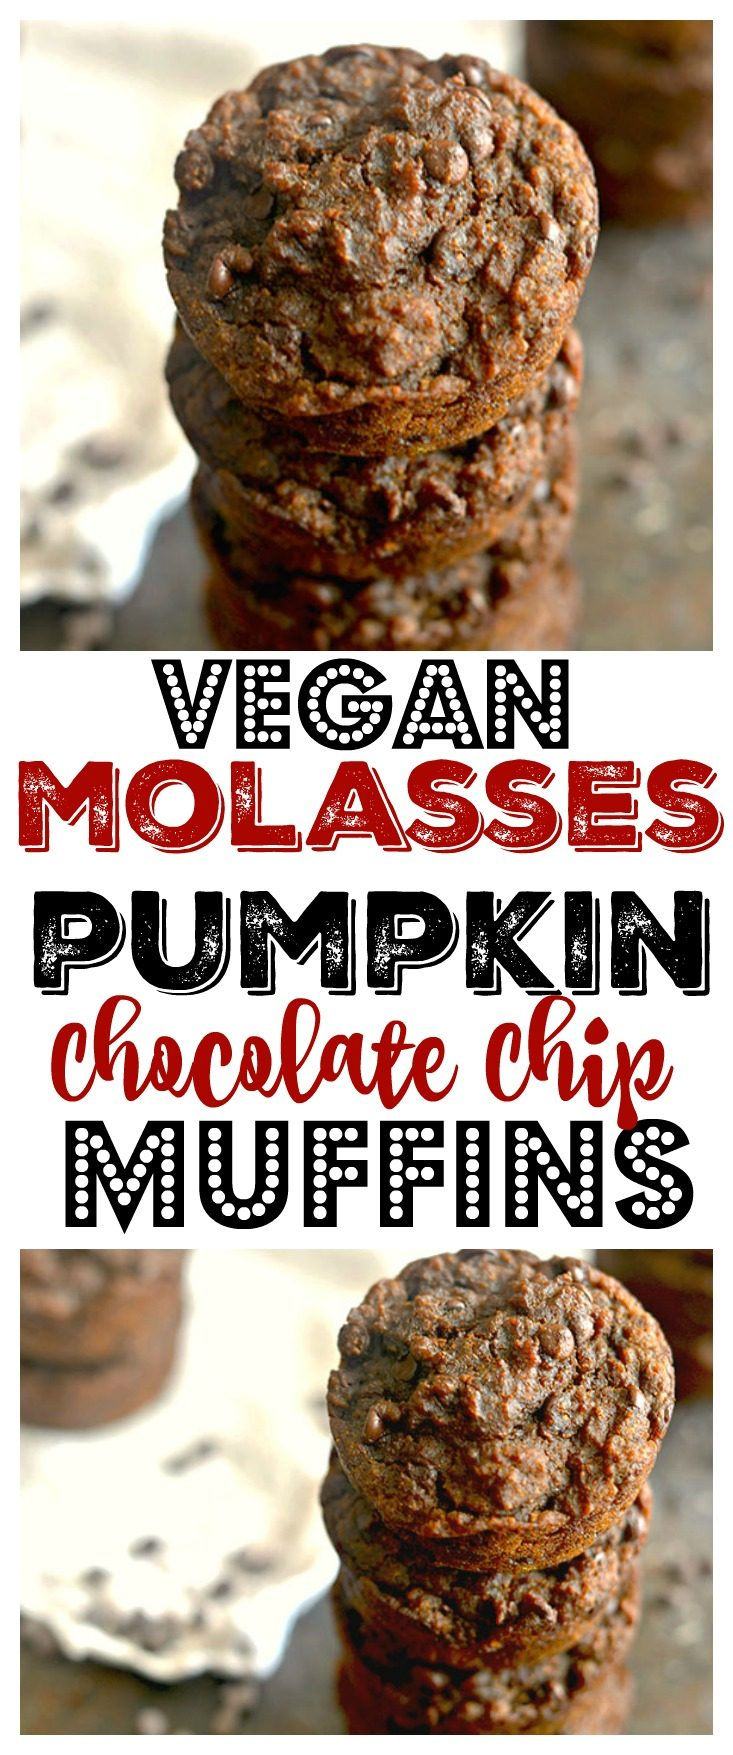 Healthy Molasses Pumpkin Chocolate Chip Muffins lightly sweetened with applesauce, brown sugar and molasses. A tasty chocolate treat packed with fall spices, irresistible flavors and 127 calories each! Gluten Free + Vegan + Low Calorie